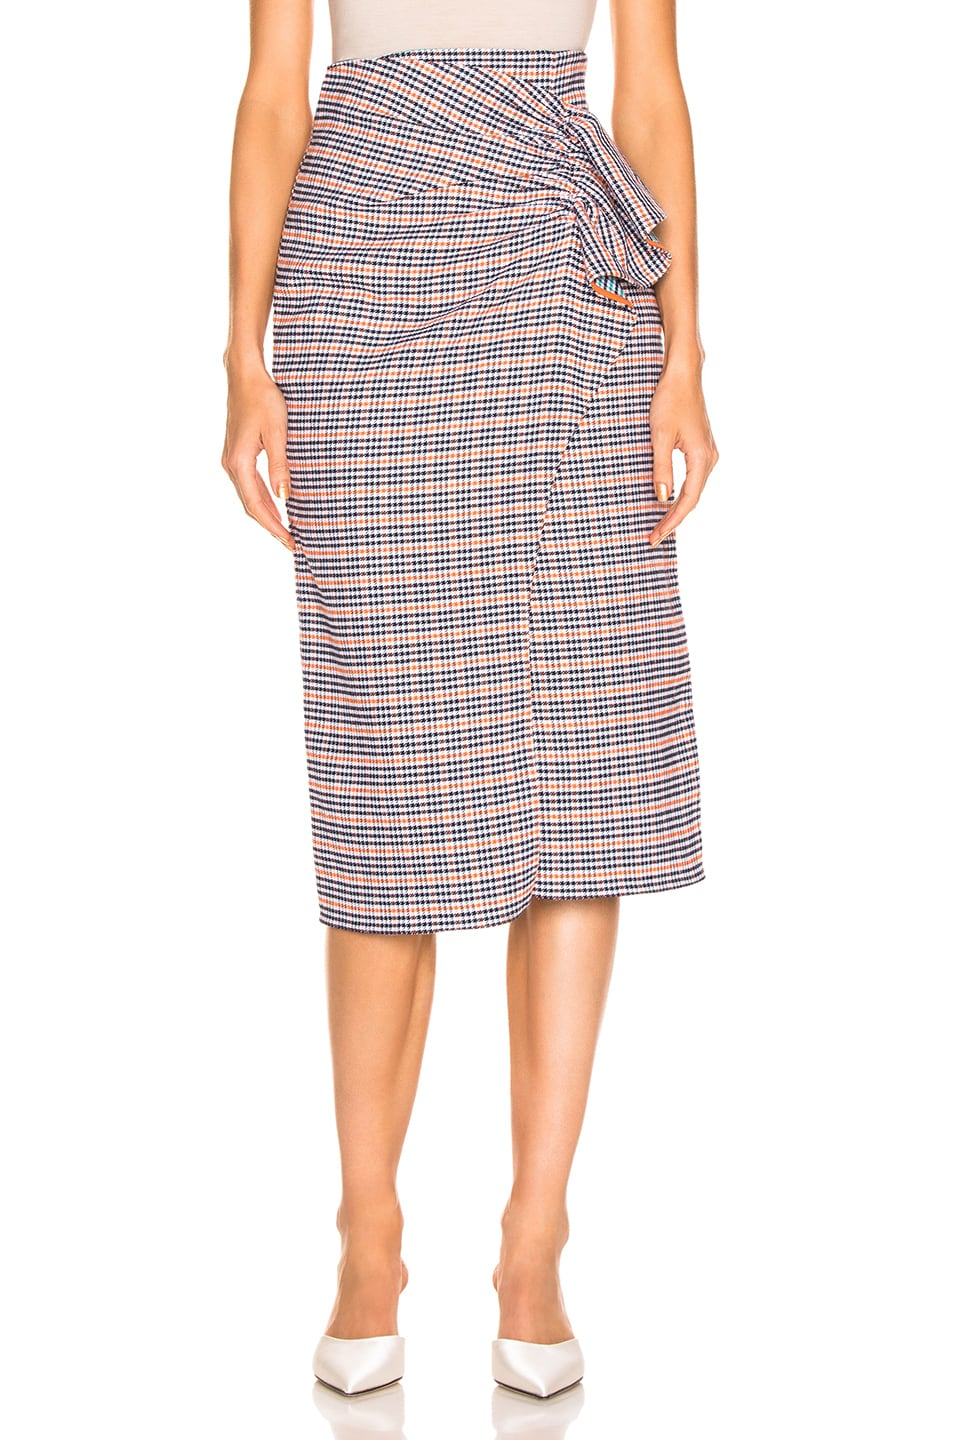 Image 1 of SILVIA TCHERASSI Guzmania Skirt in Checkered Orange